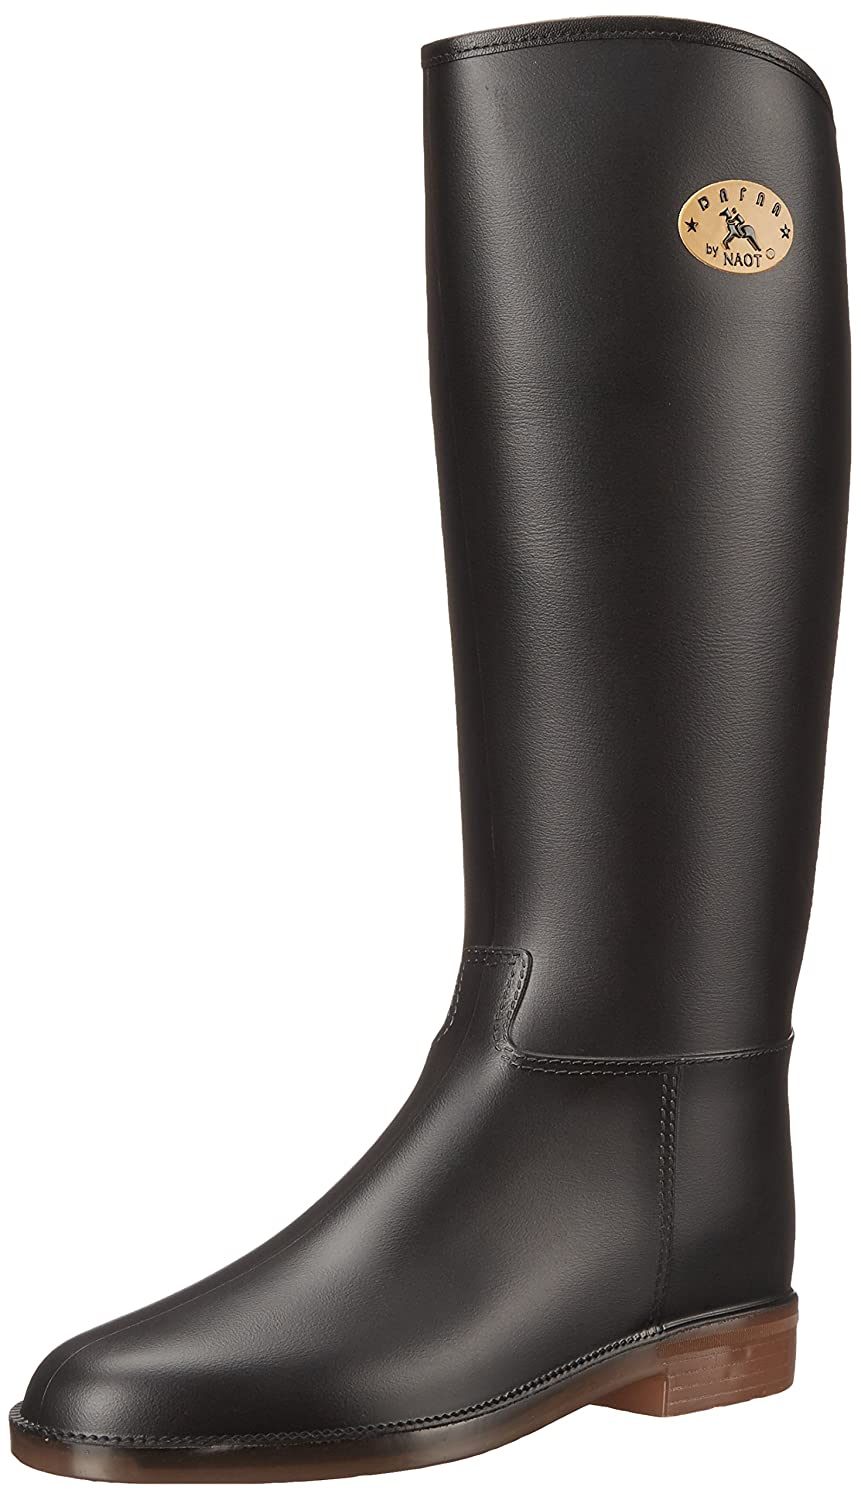 Dafna by Naot Women's Yvonne Rain Boot B00UUGYA7I 37 EU/6-6.5 M US|Black